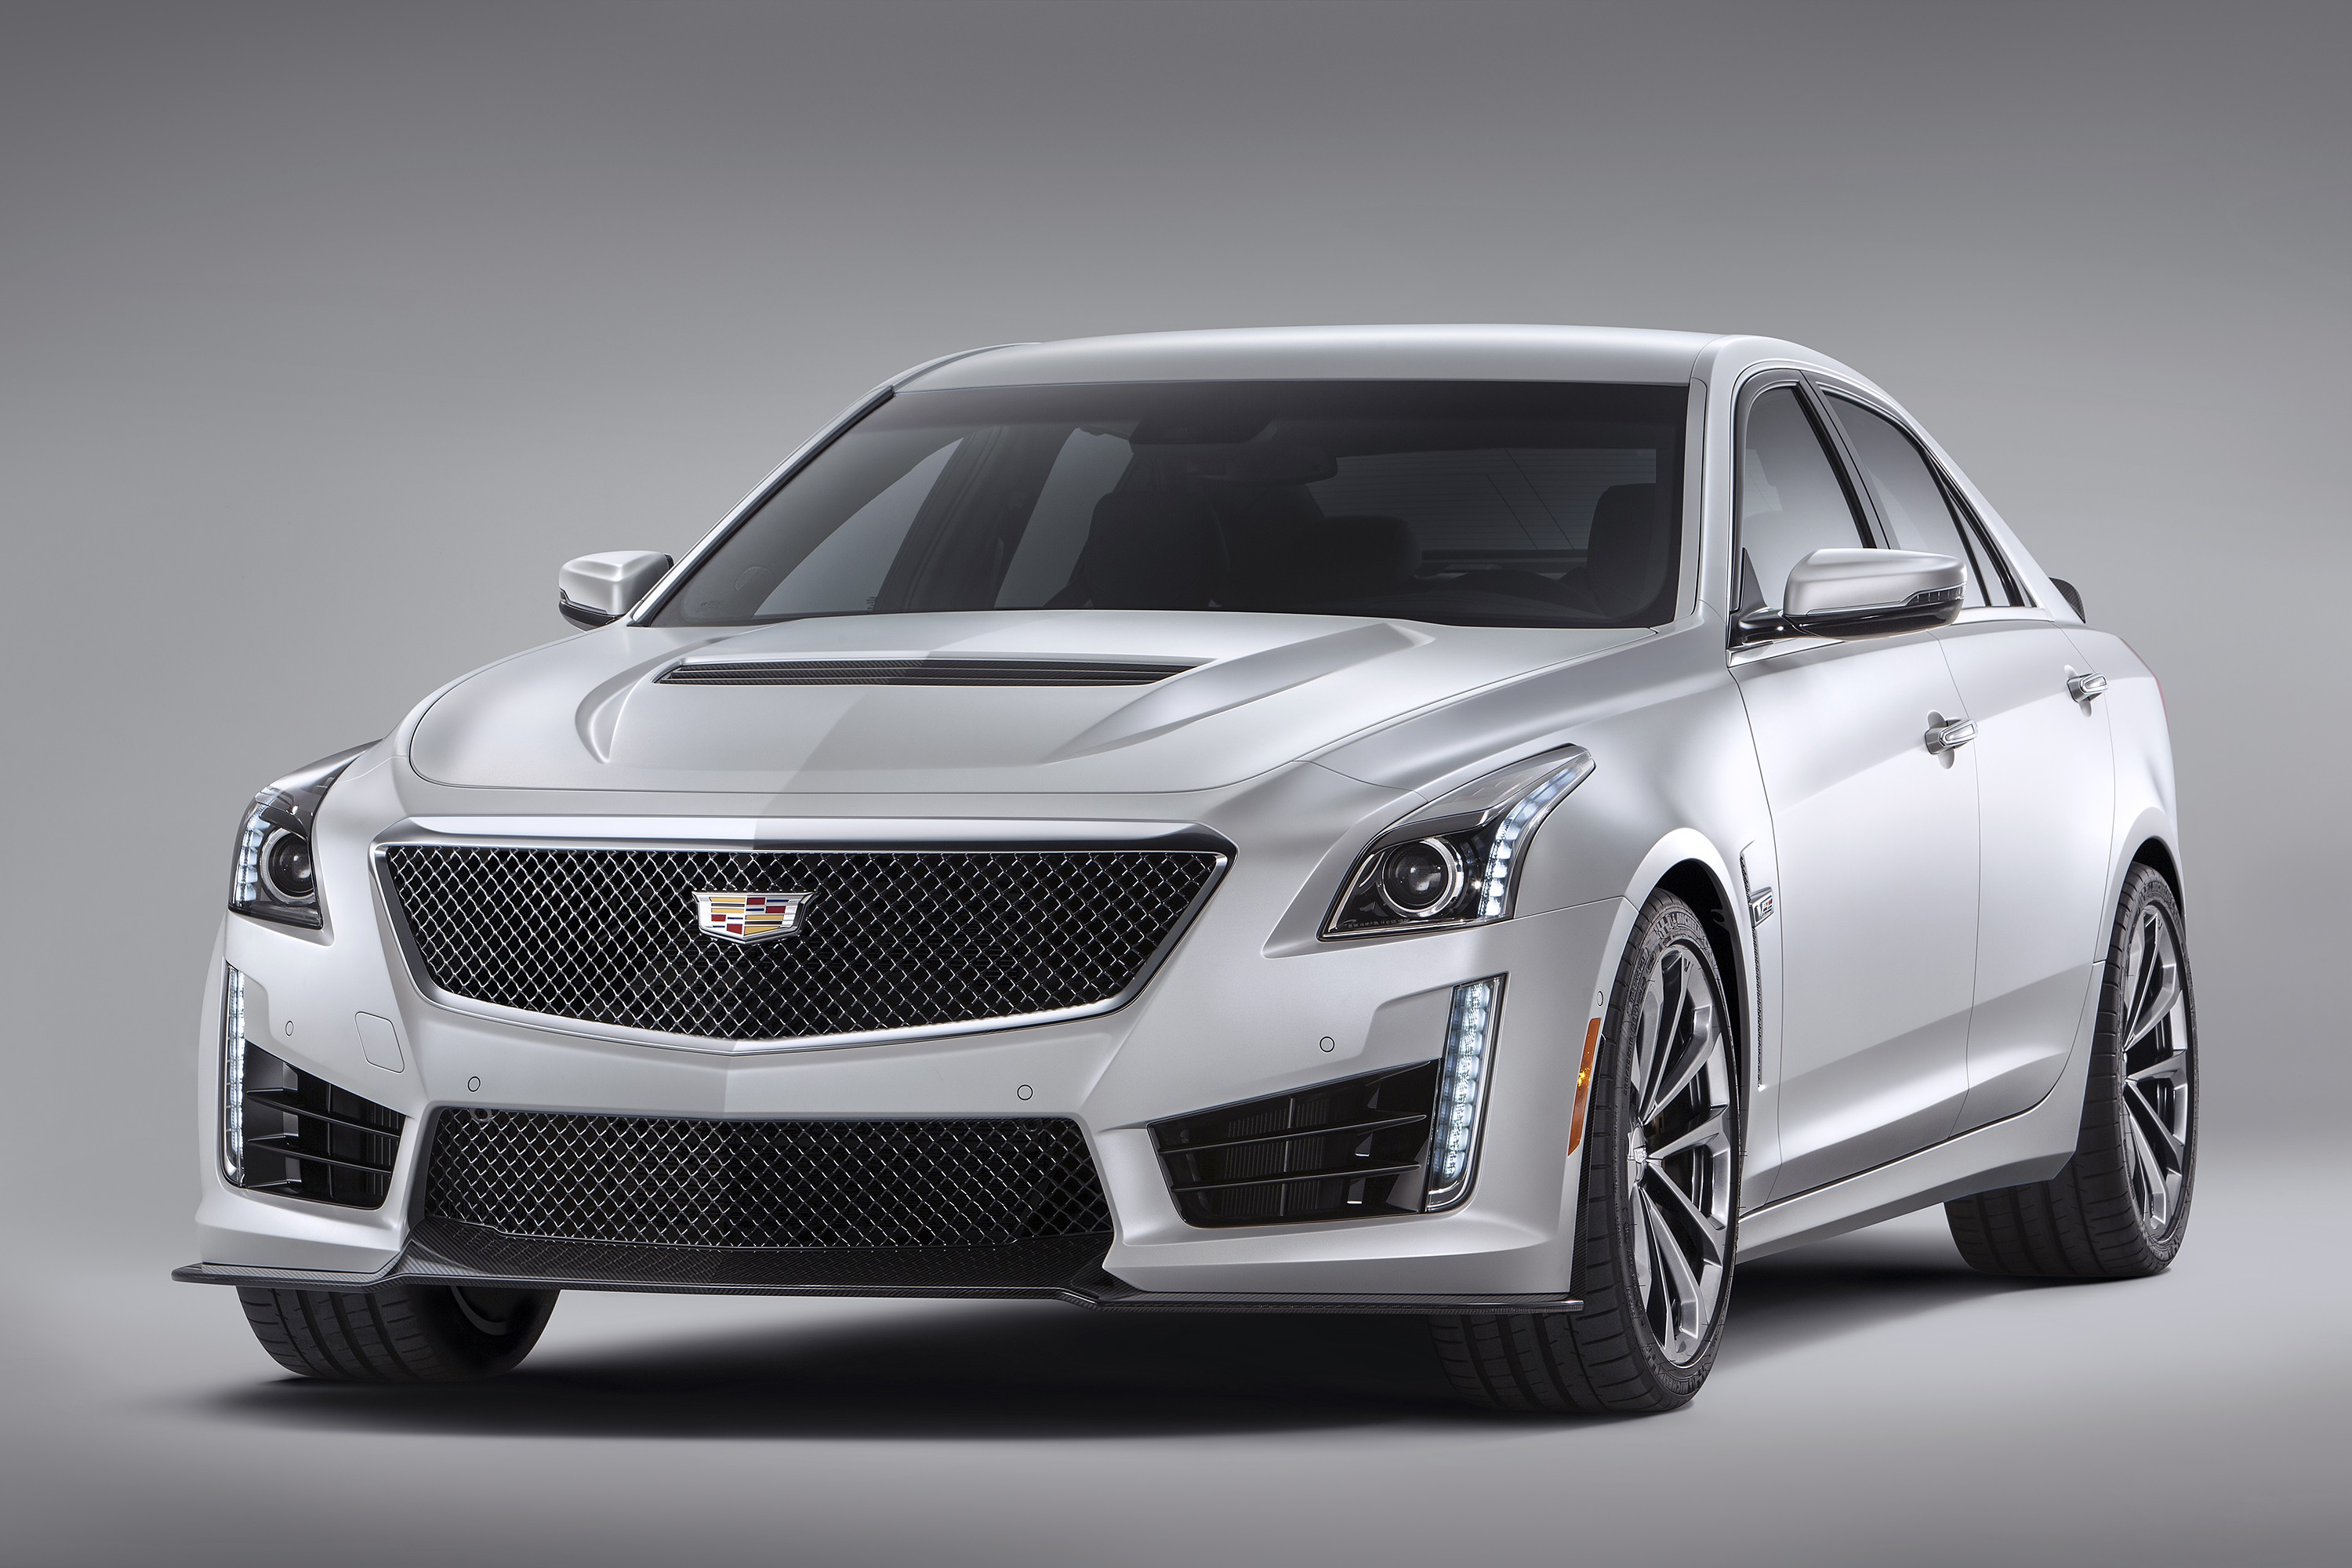 2016 Cadillac Cts 2008 Pictures Information And Specs Auto Fuse Box In Cars 10